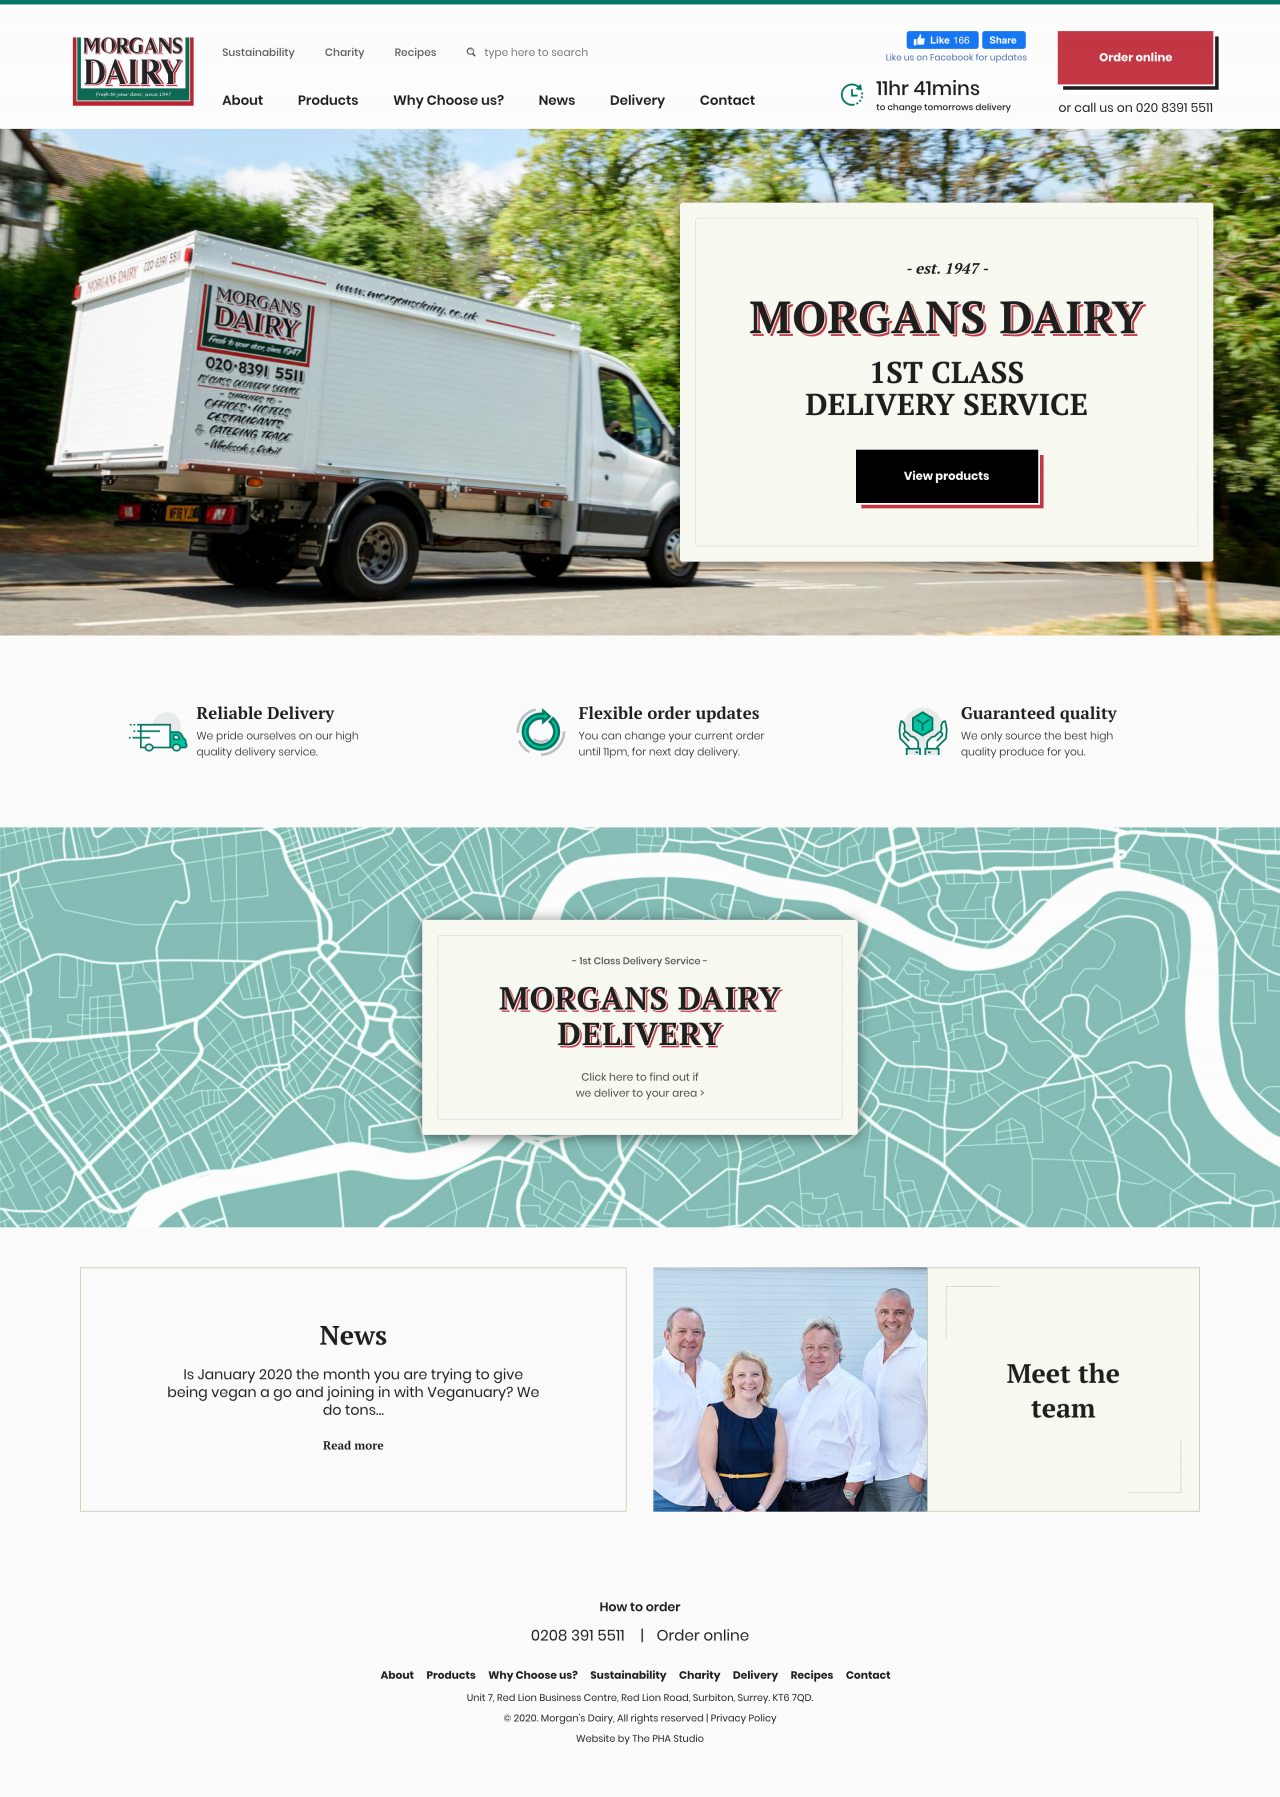 Morgans Dairy Website | Tom Hoadley | Freelance Wordpress Developer